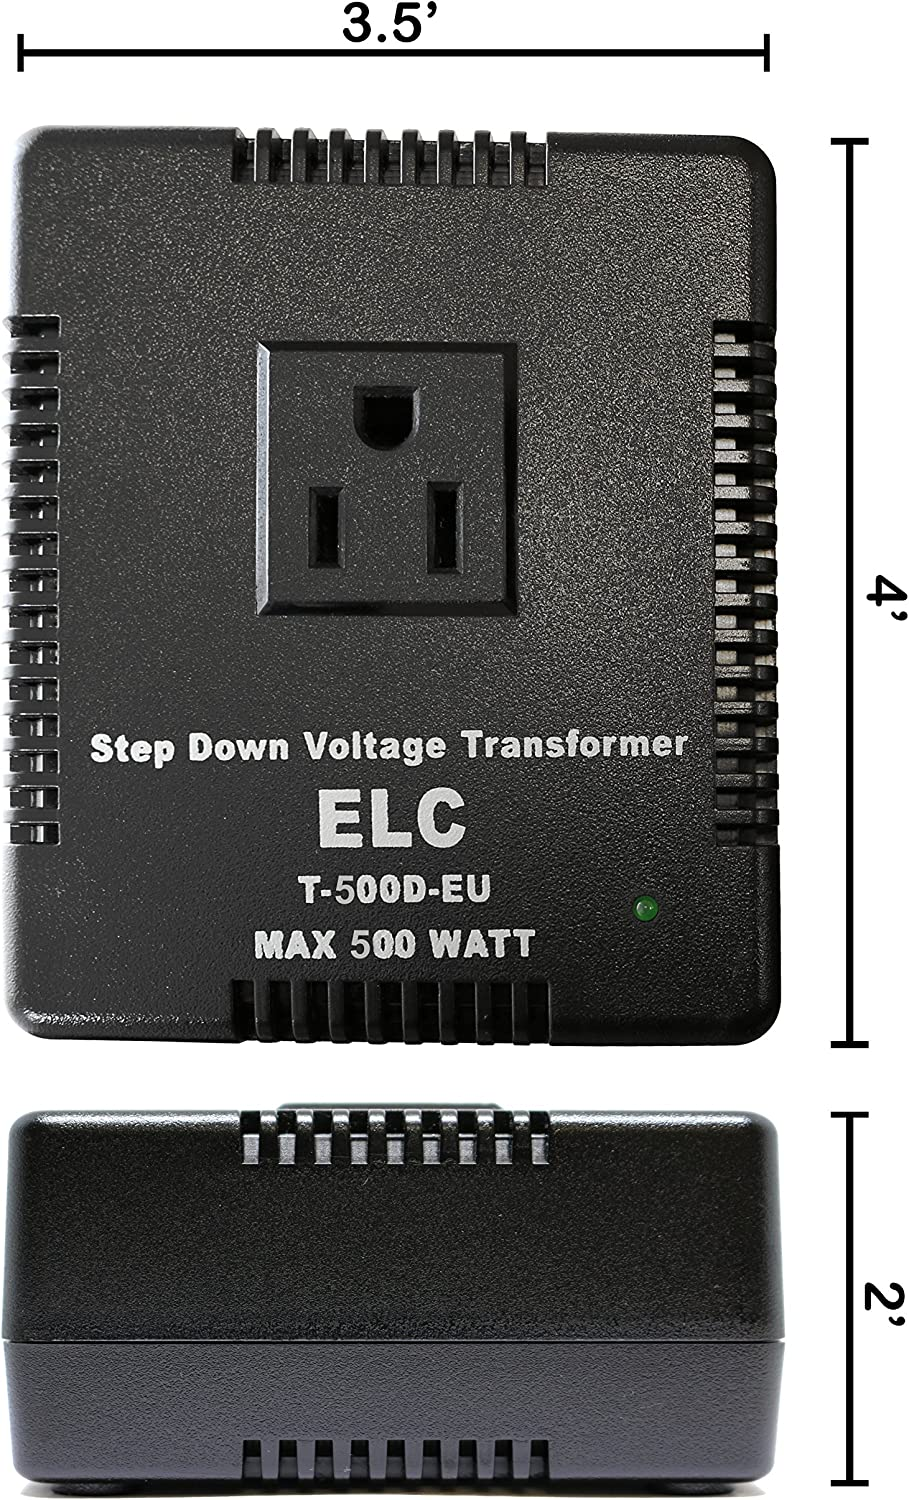 Travel Chargers ELC 200 Watt Voltage Converter Transformer Heavy Duty Compact 220//240 to 110//120 Volt for Hair Straightener Laptops Step Down TVs Toothbrush Light Weight